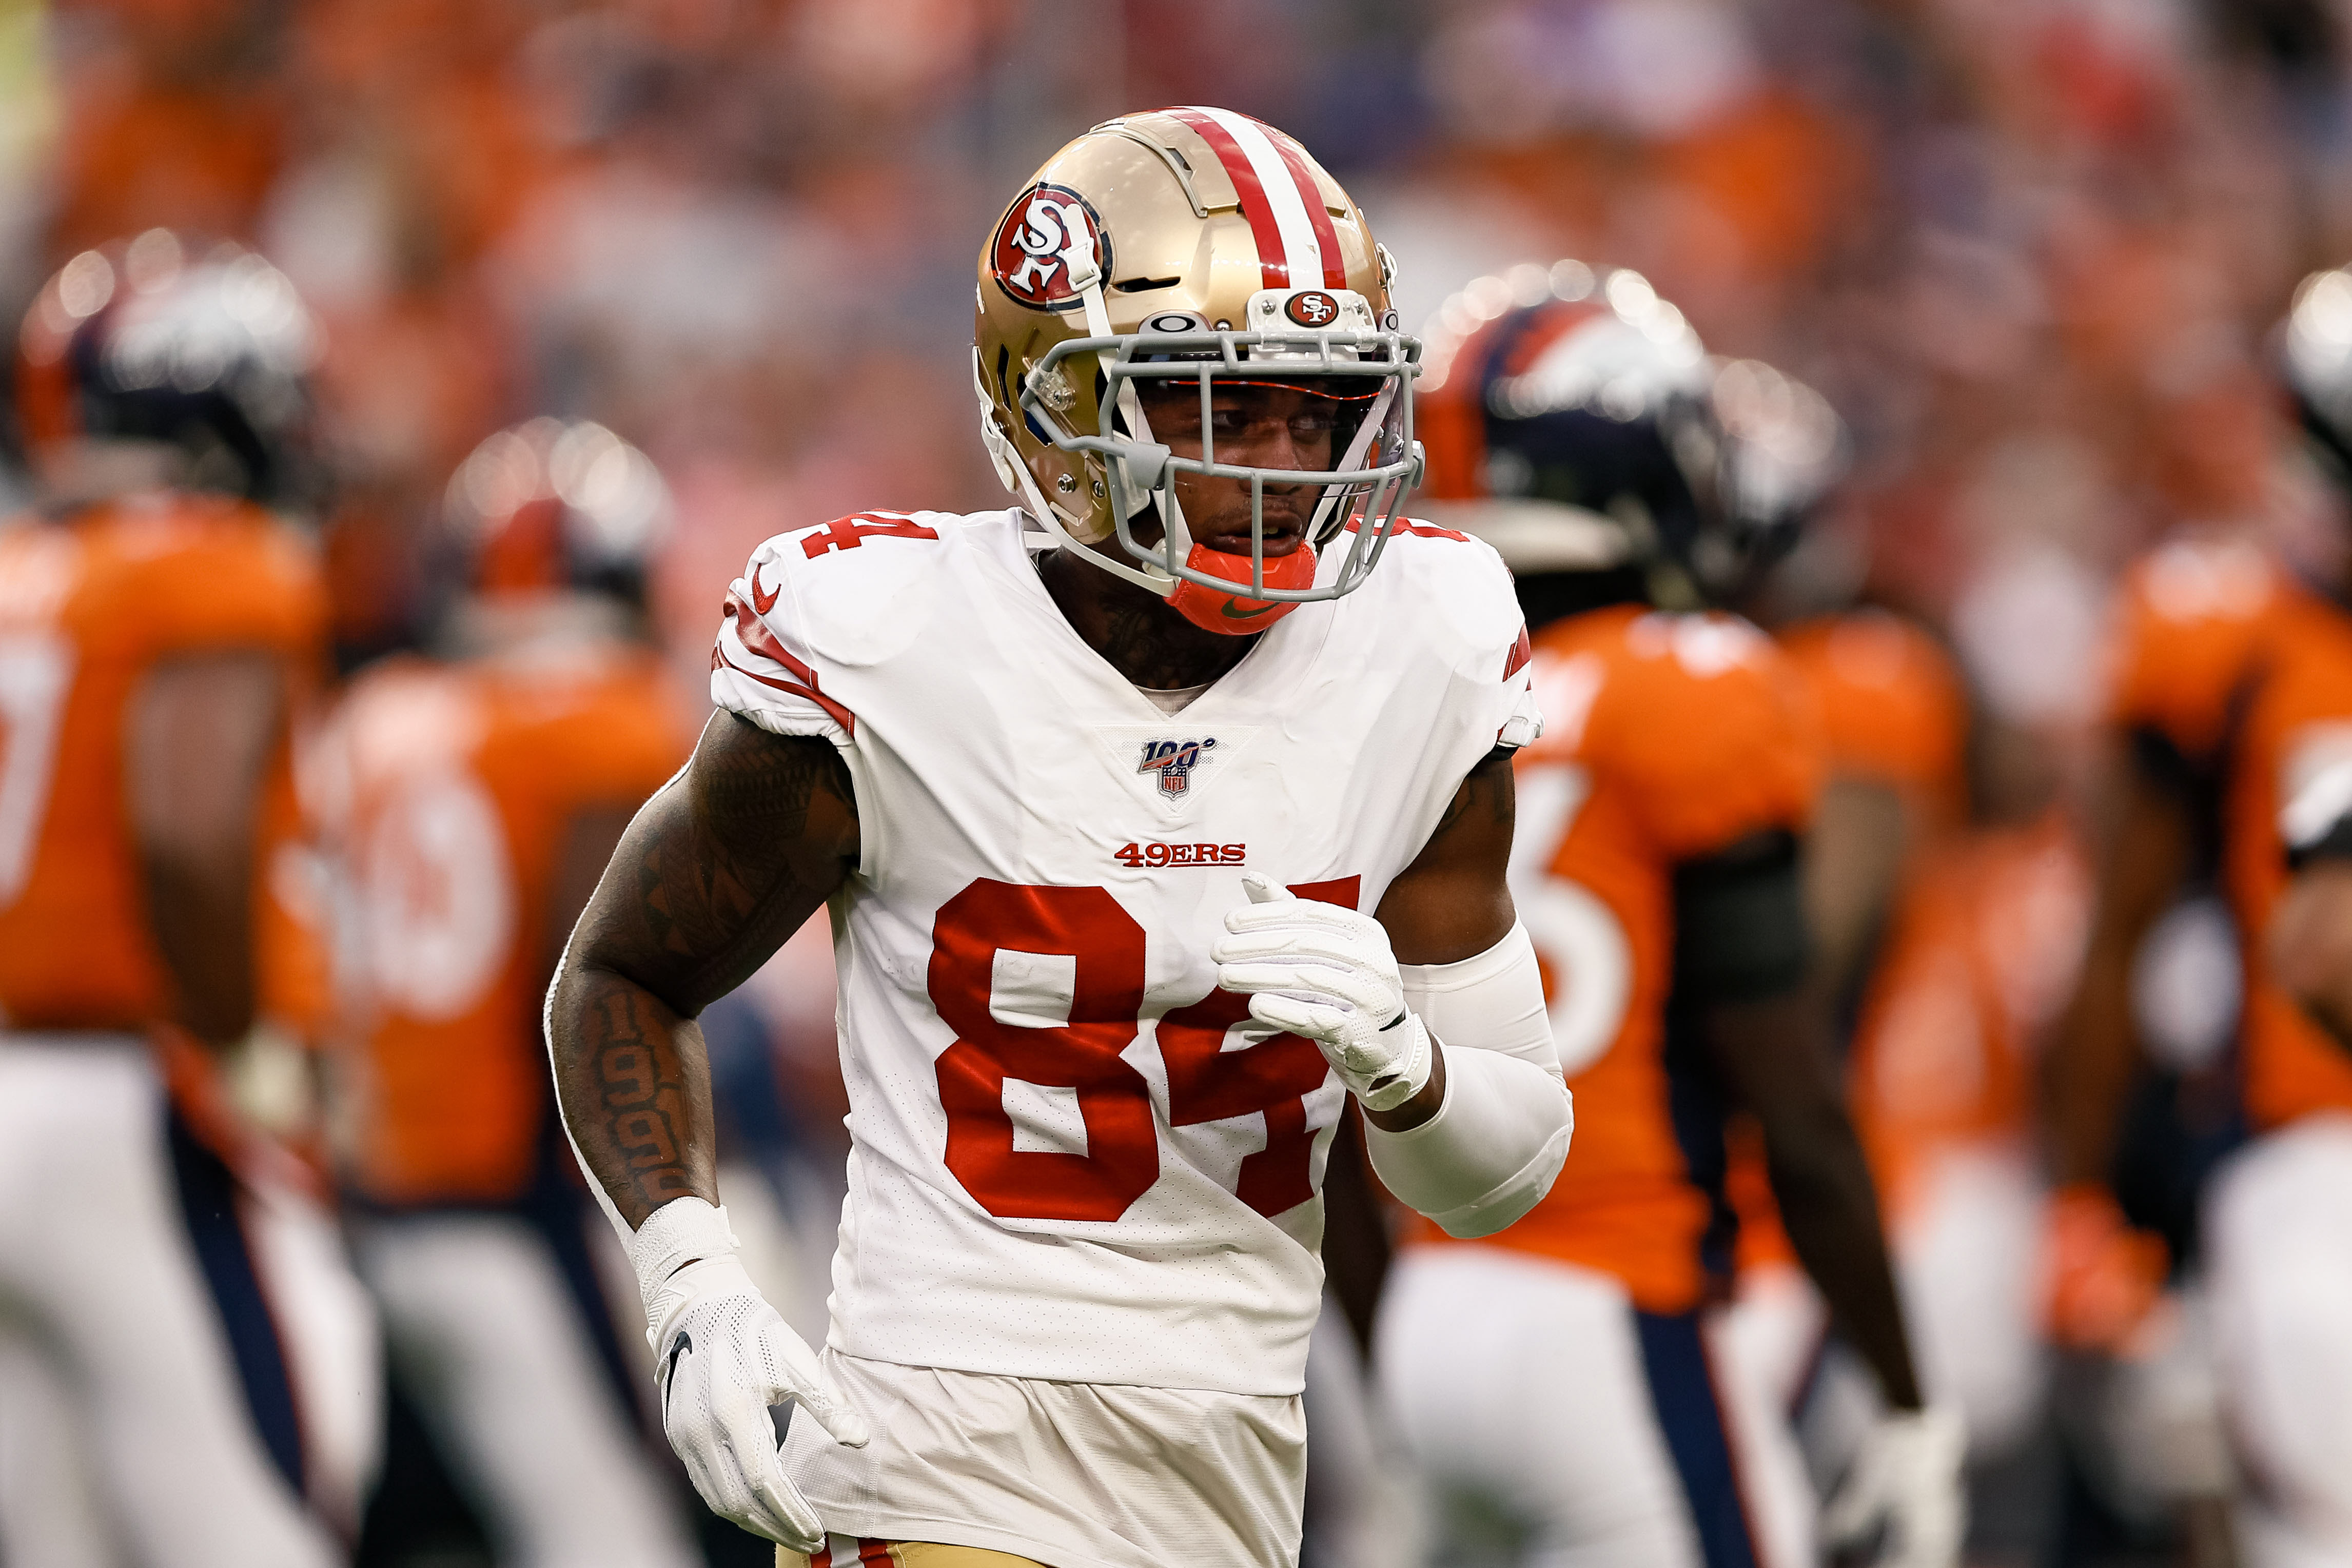 Nfl 49ers Reportedly Under Covid 19 Investigation